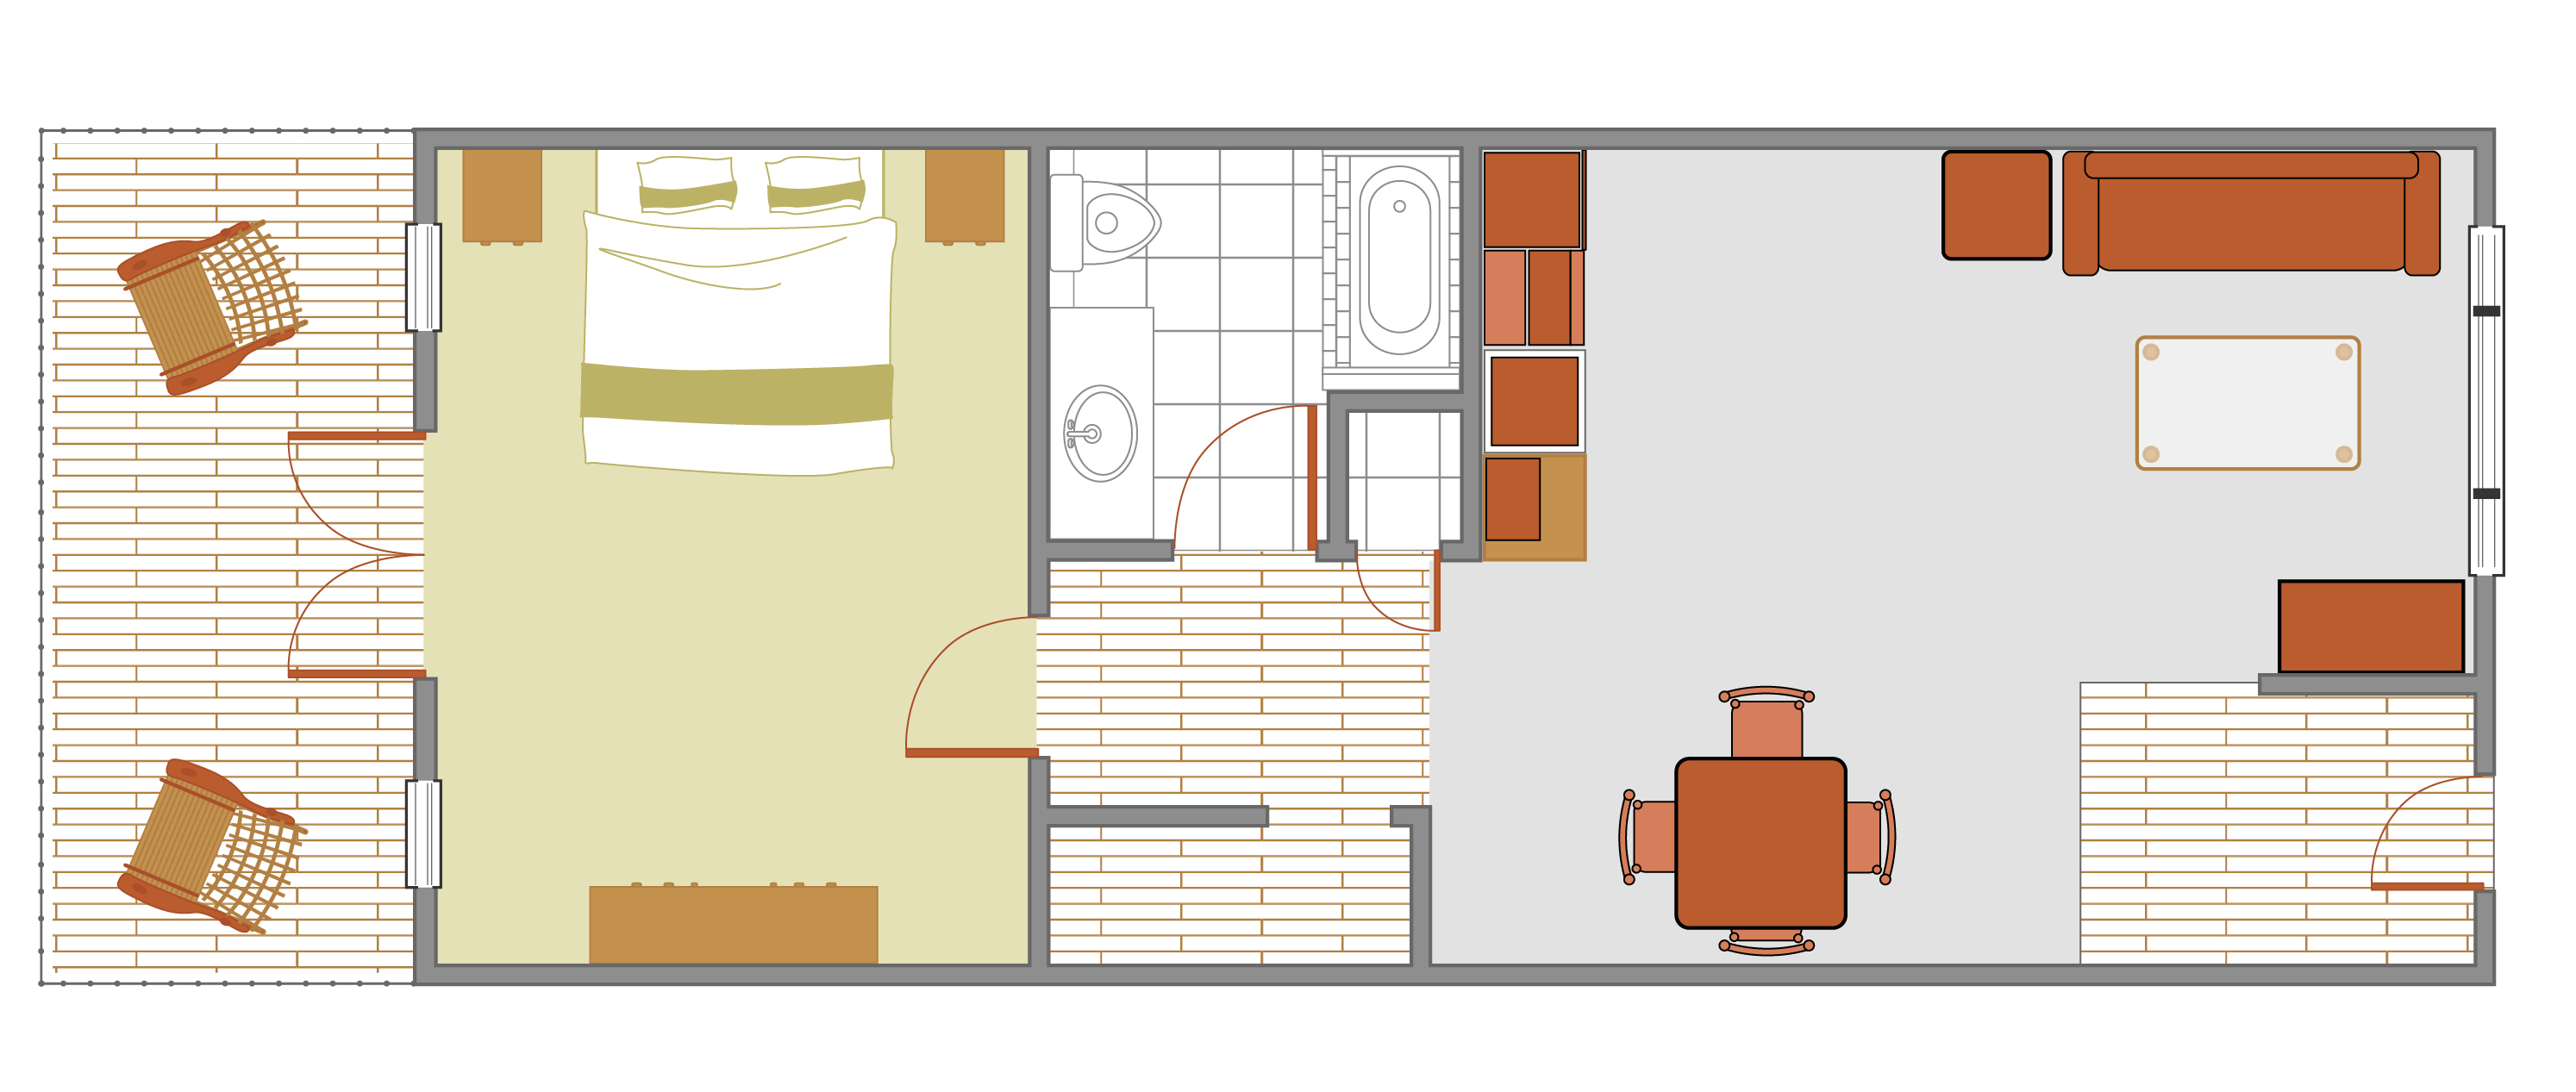 Springdale Center Suites Floor Plan